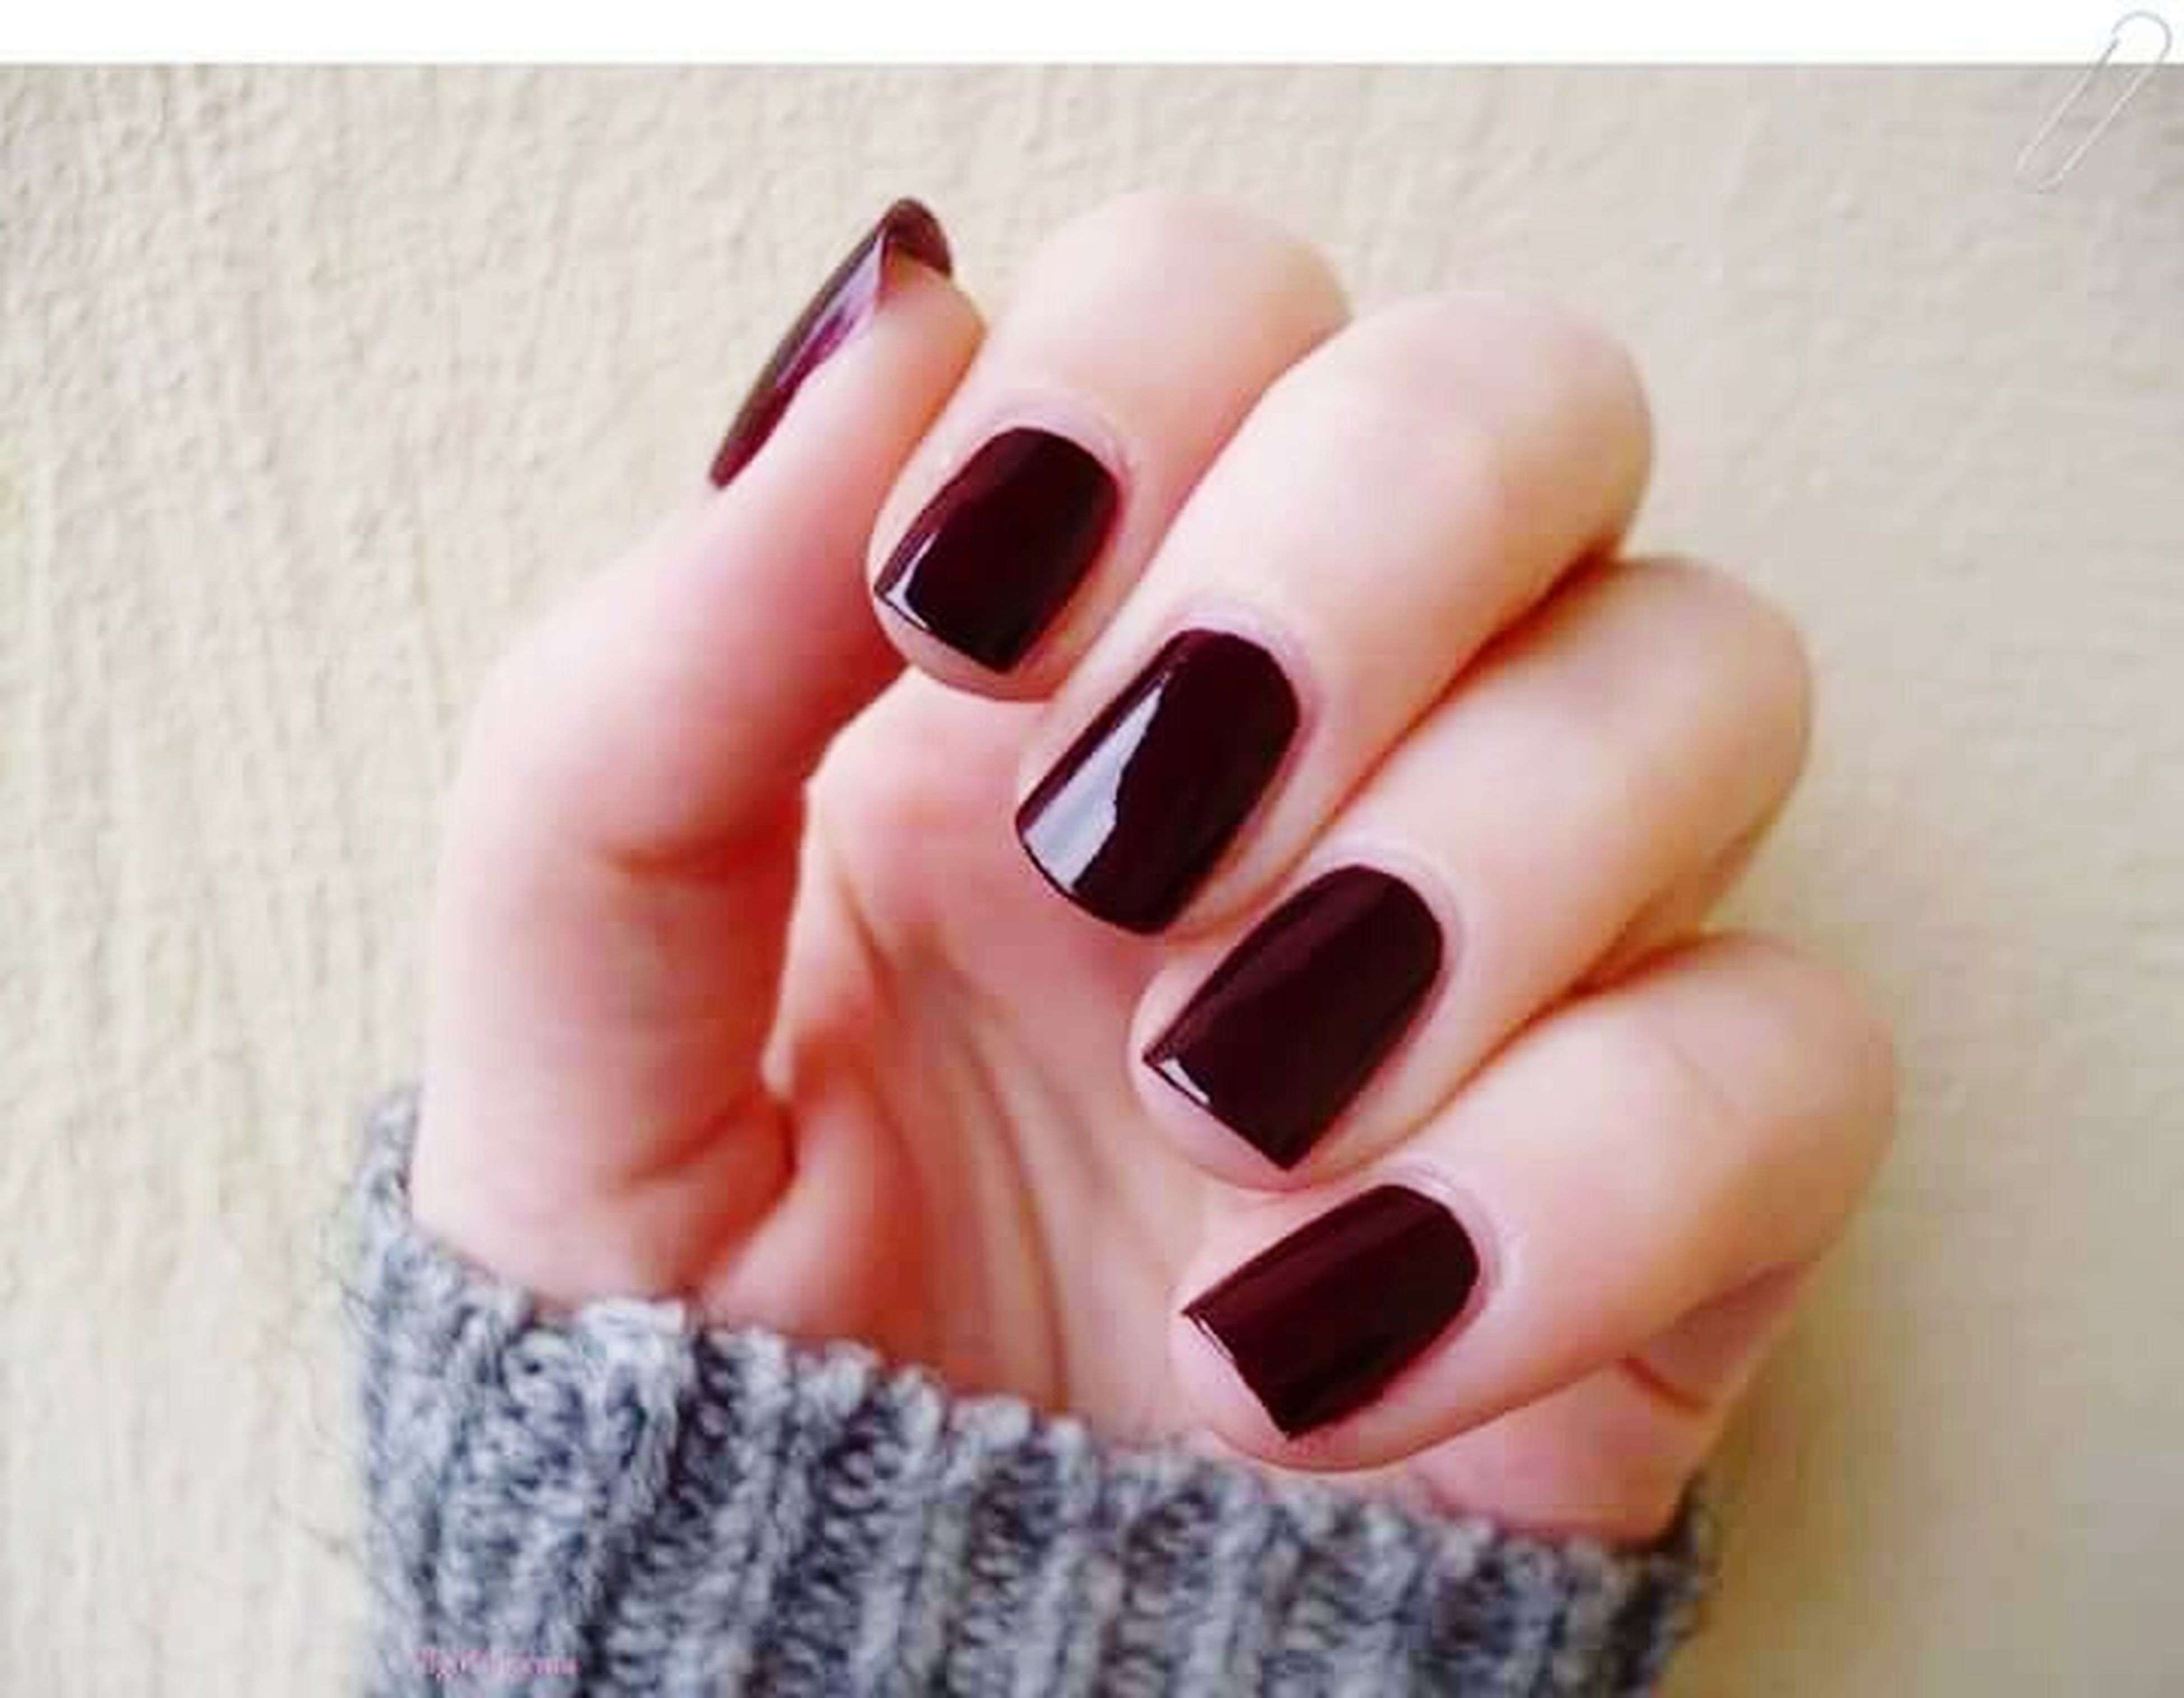 person, indoors, part of, holding, human finger, close-up, cropped, ring, lifestyles, nail polish, connection, high angle view, unrecognizable person, leisure activity, technology, personal perspective